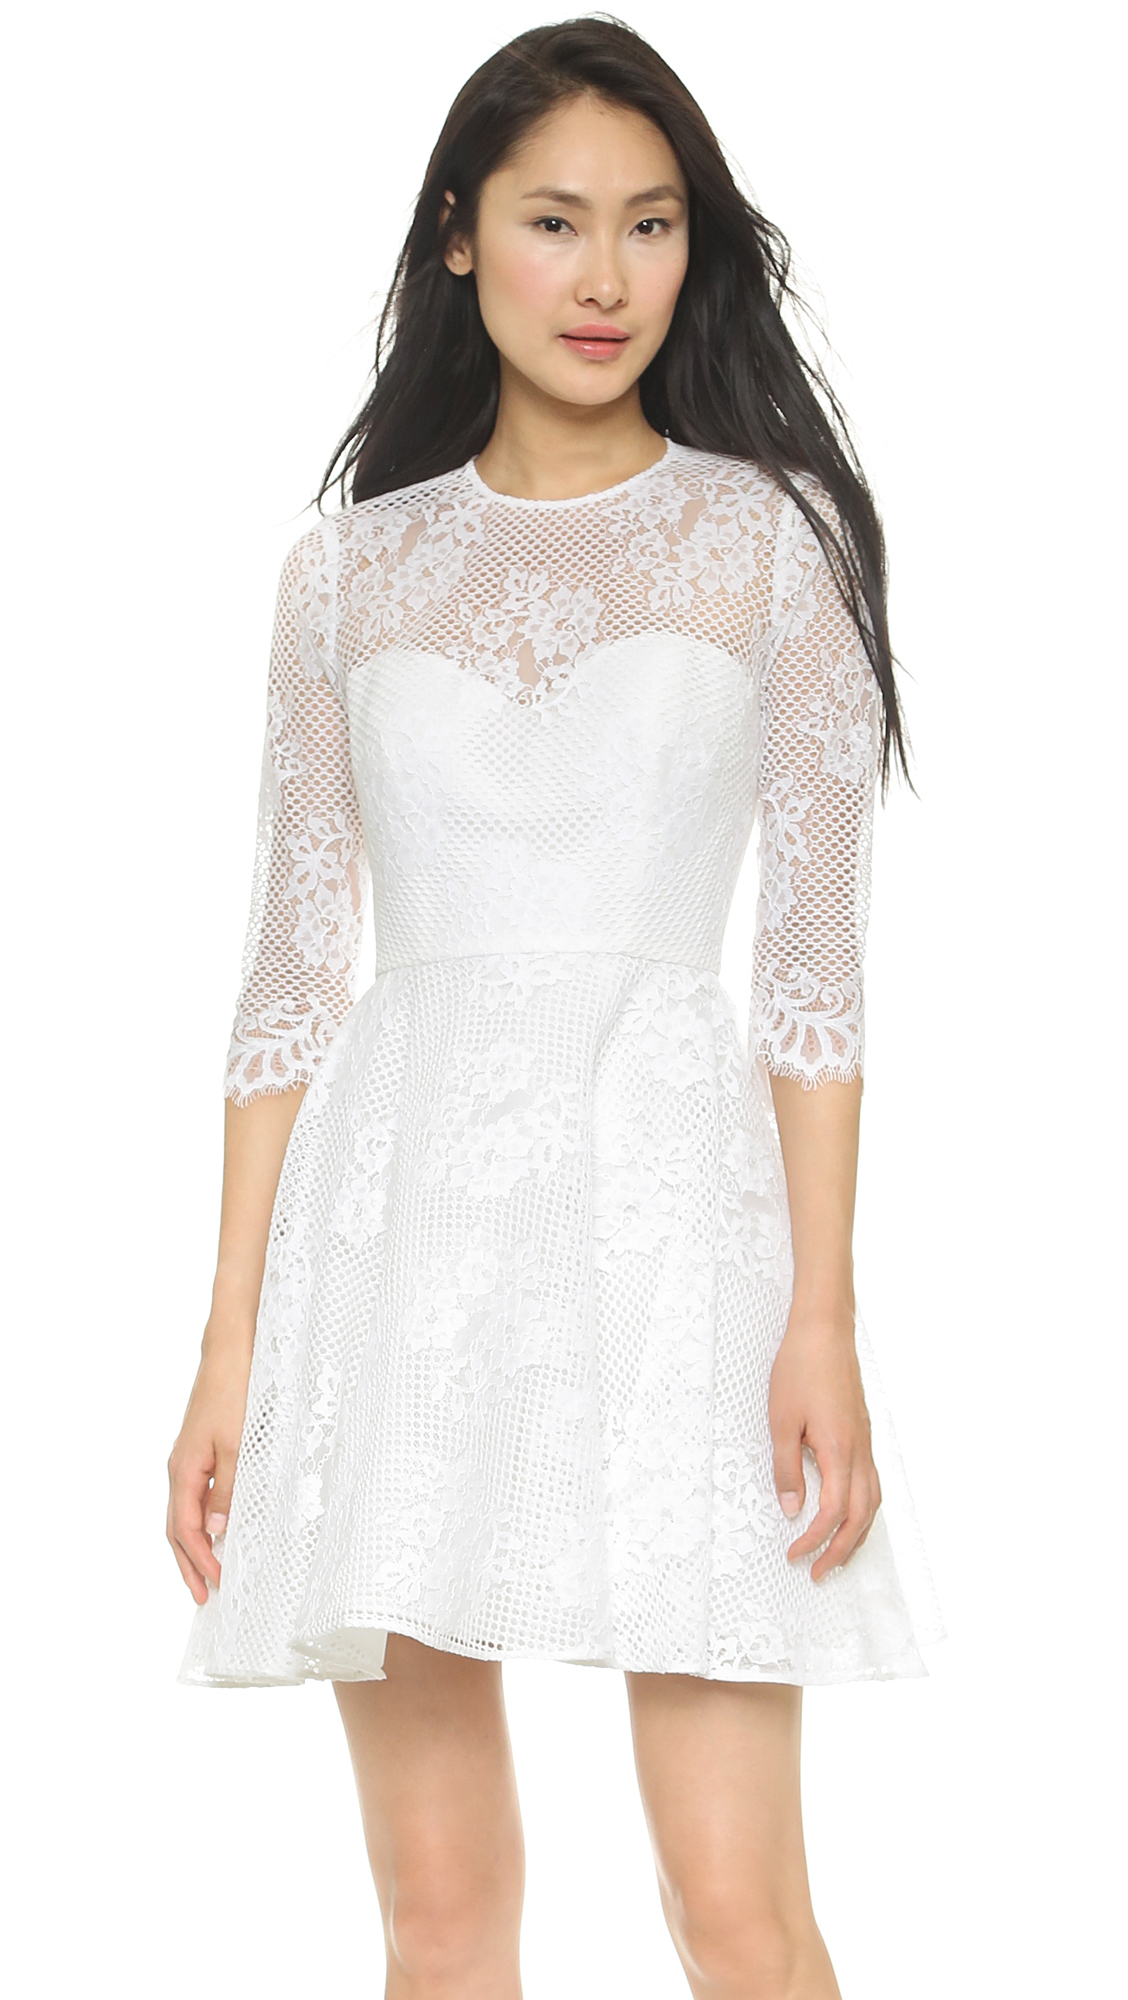 Monique Lhuillier Mignon A Line Dress In White/White